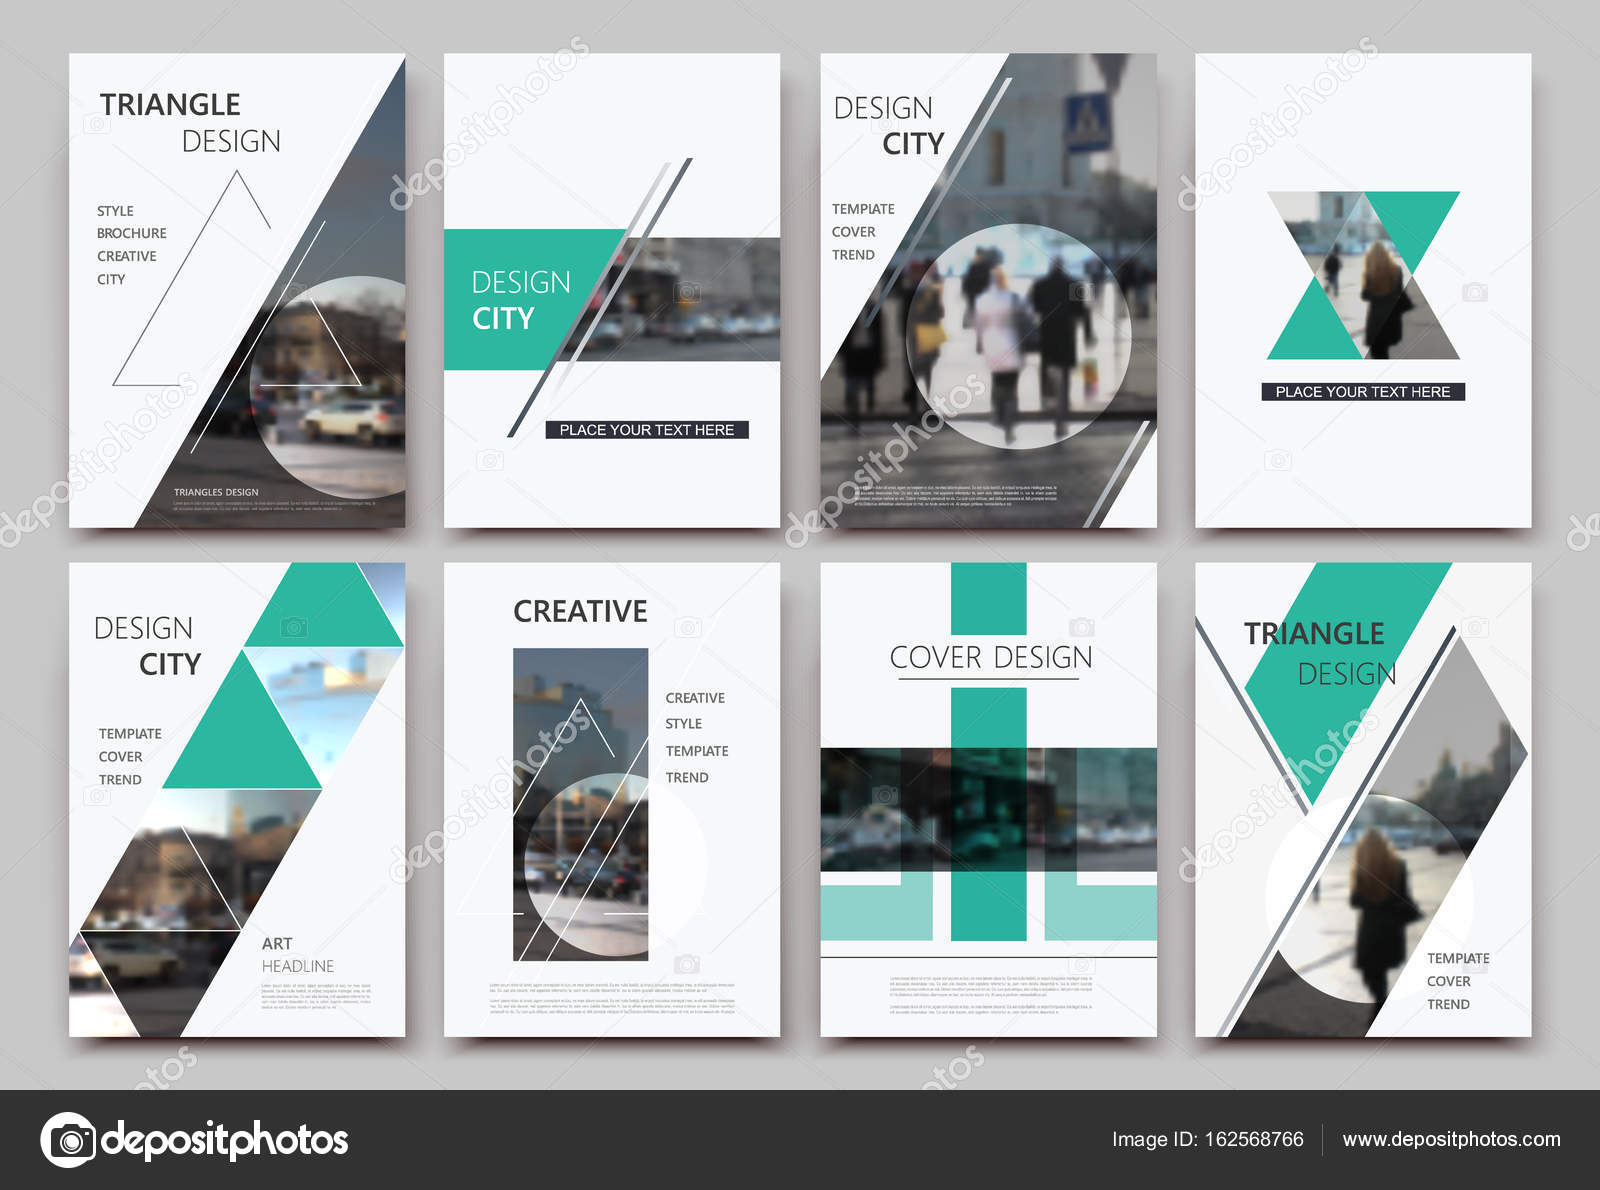 A4 Brochure Cover Design Templates For Flyer Ad Text Font Info